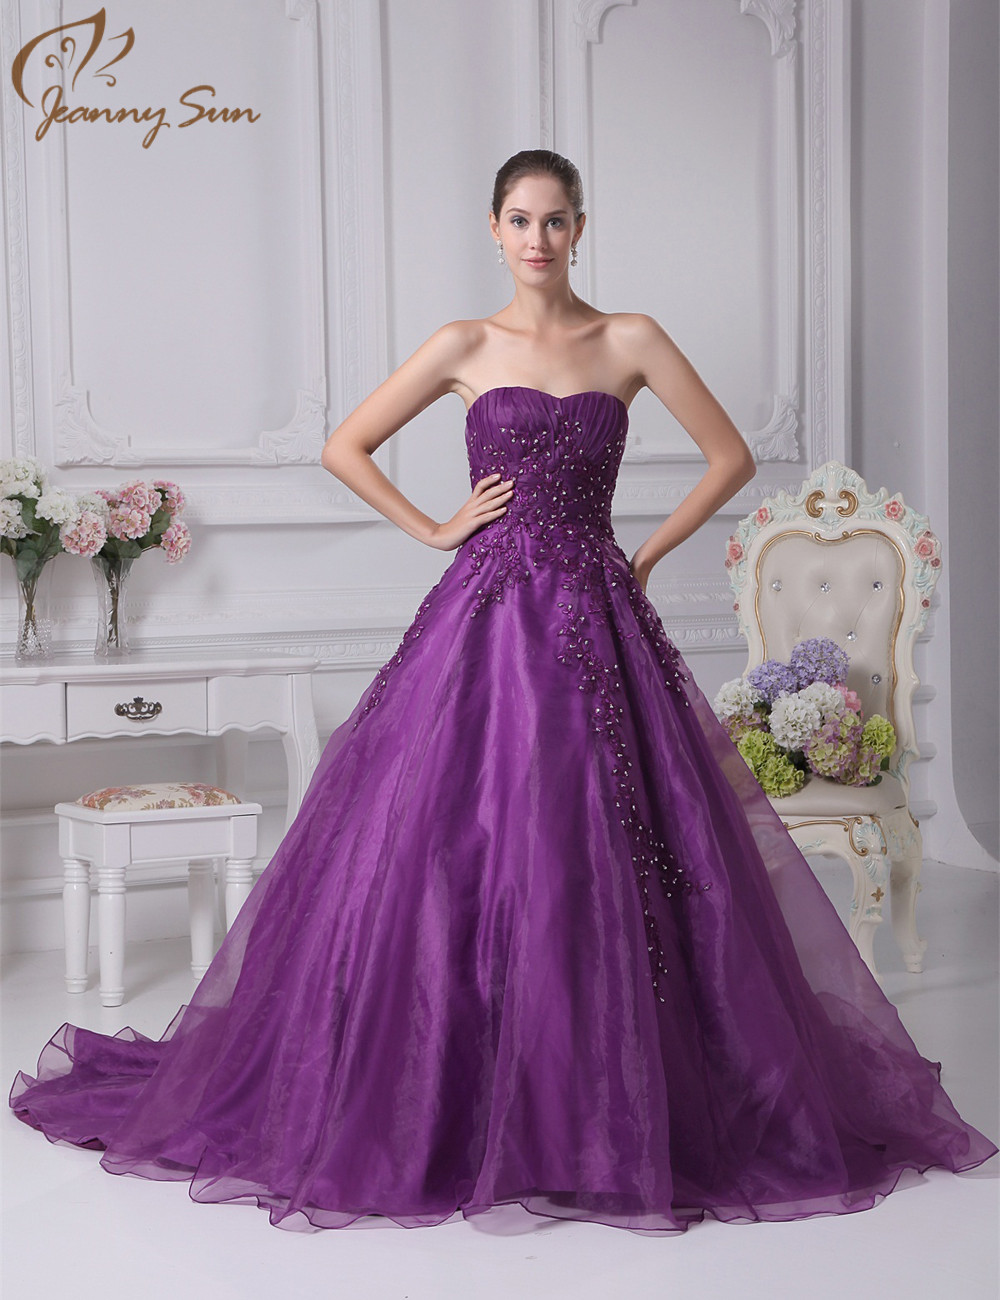 Jeanny Sun Purple Wedding Dresses with Beading Appliques Sweetheart ...